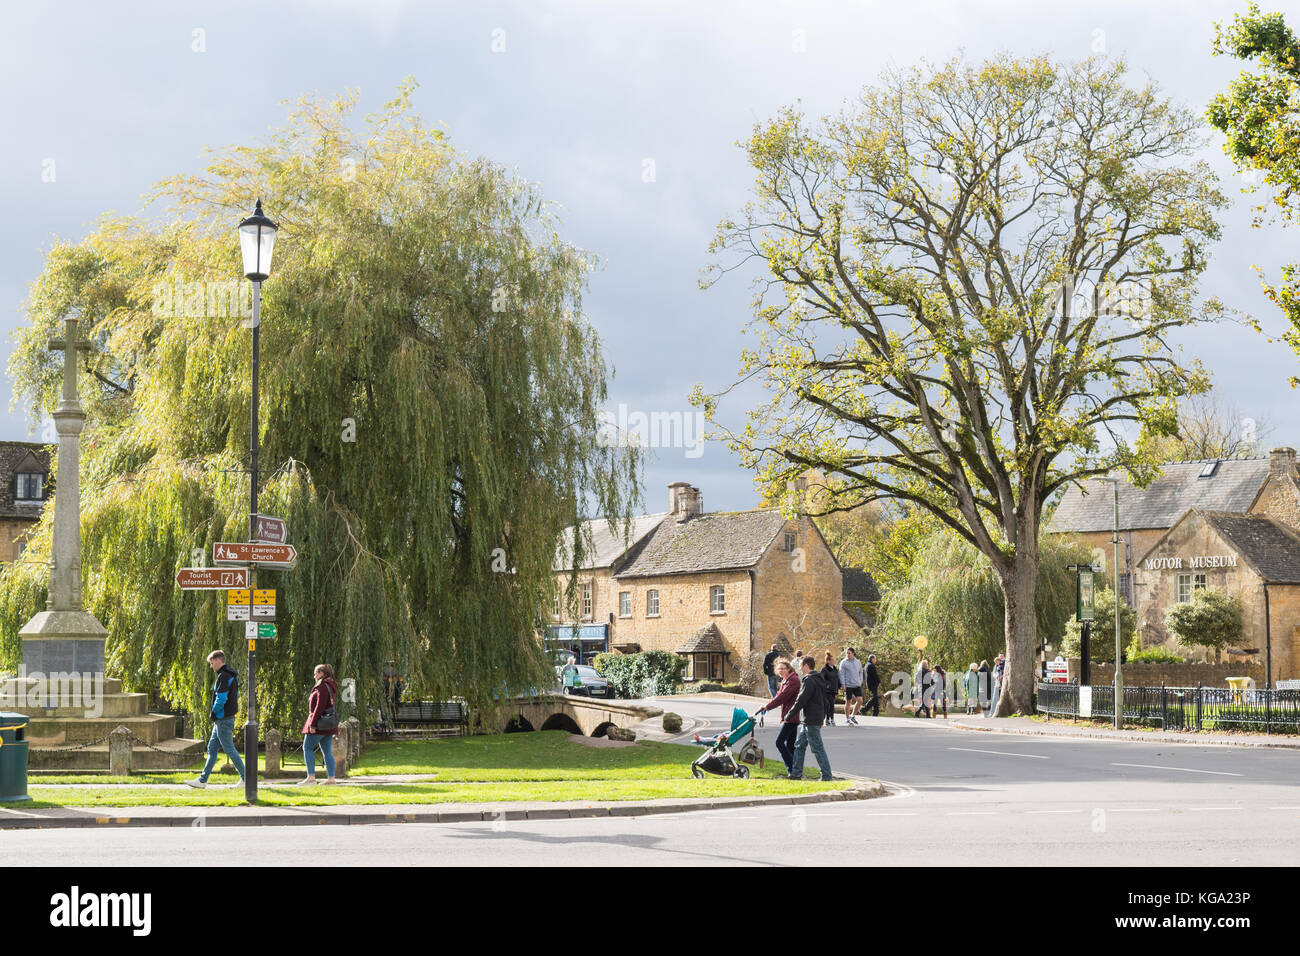 Bourton on the Water - a busy and popular Cotswold village in Gloucestershire, England, UK - Stock Image